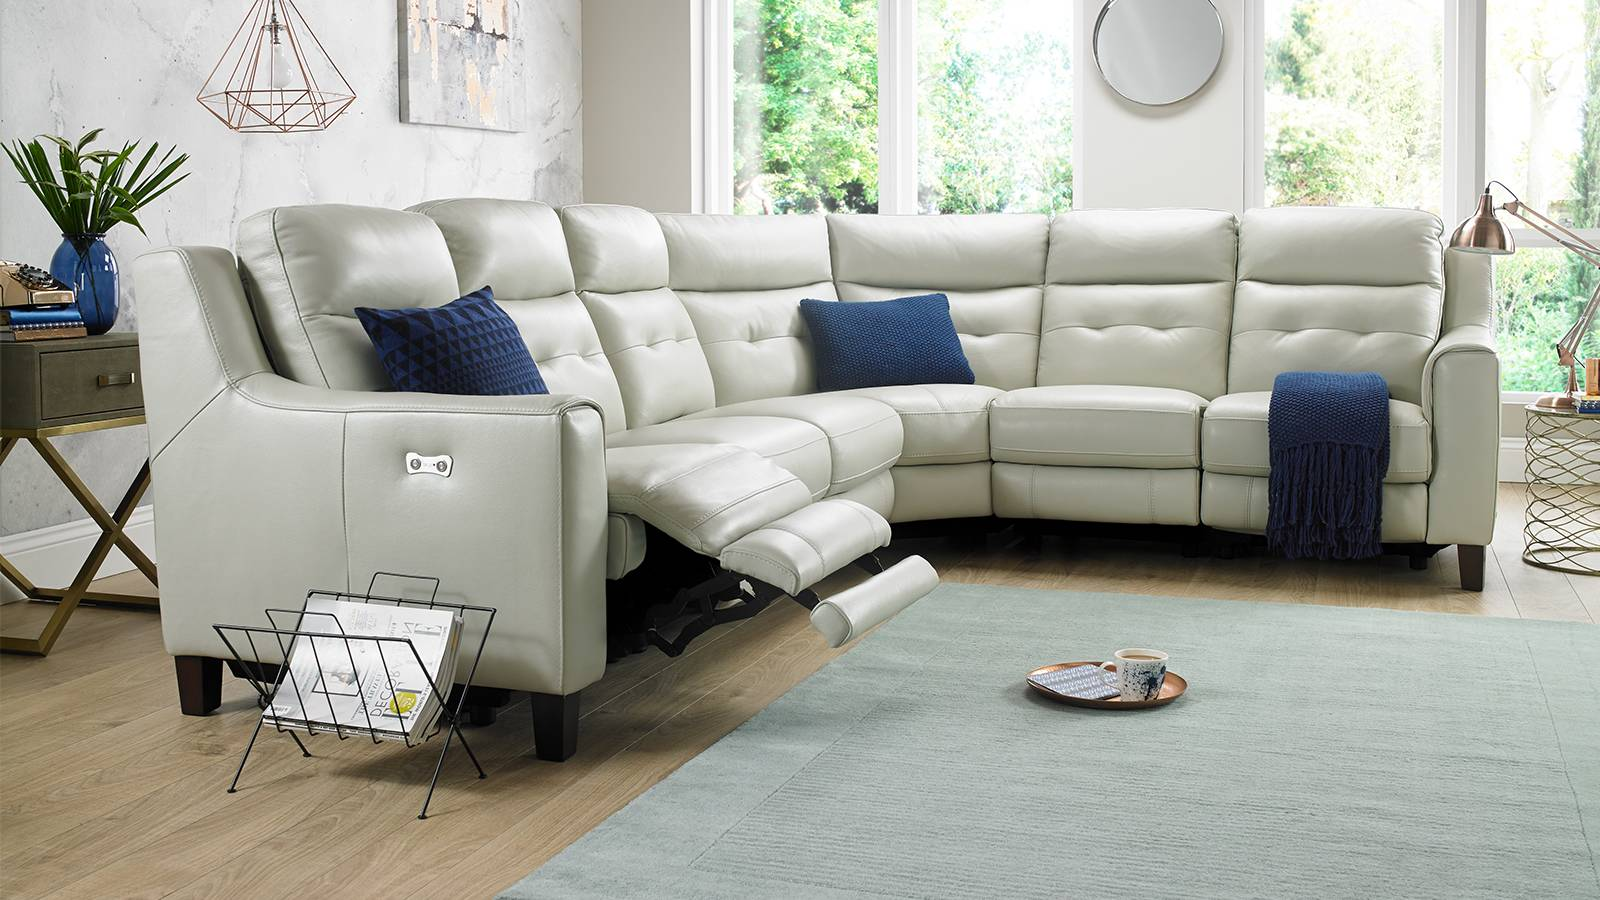 White leather recliner corner sofa